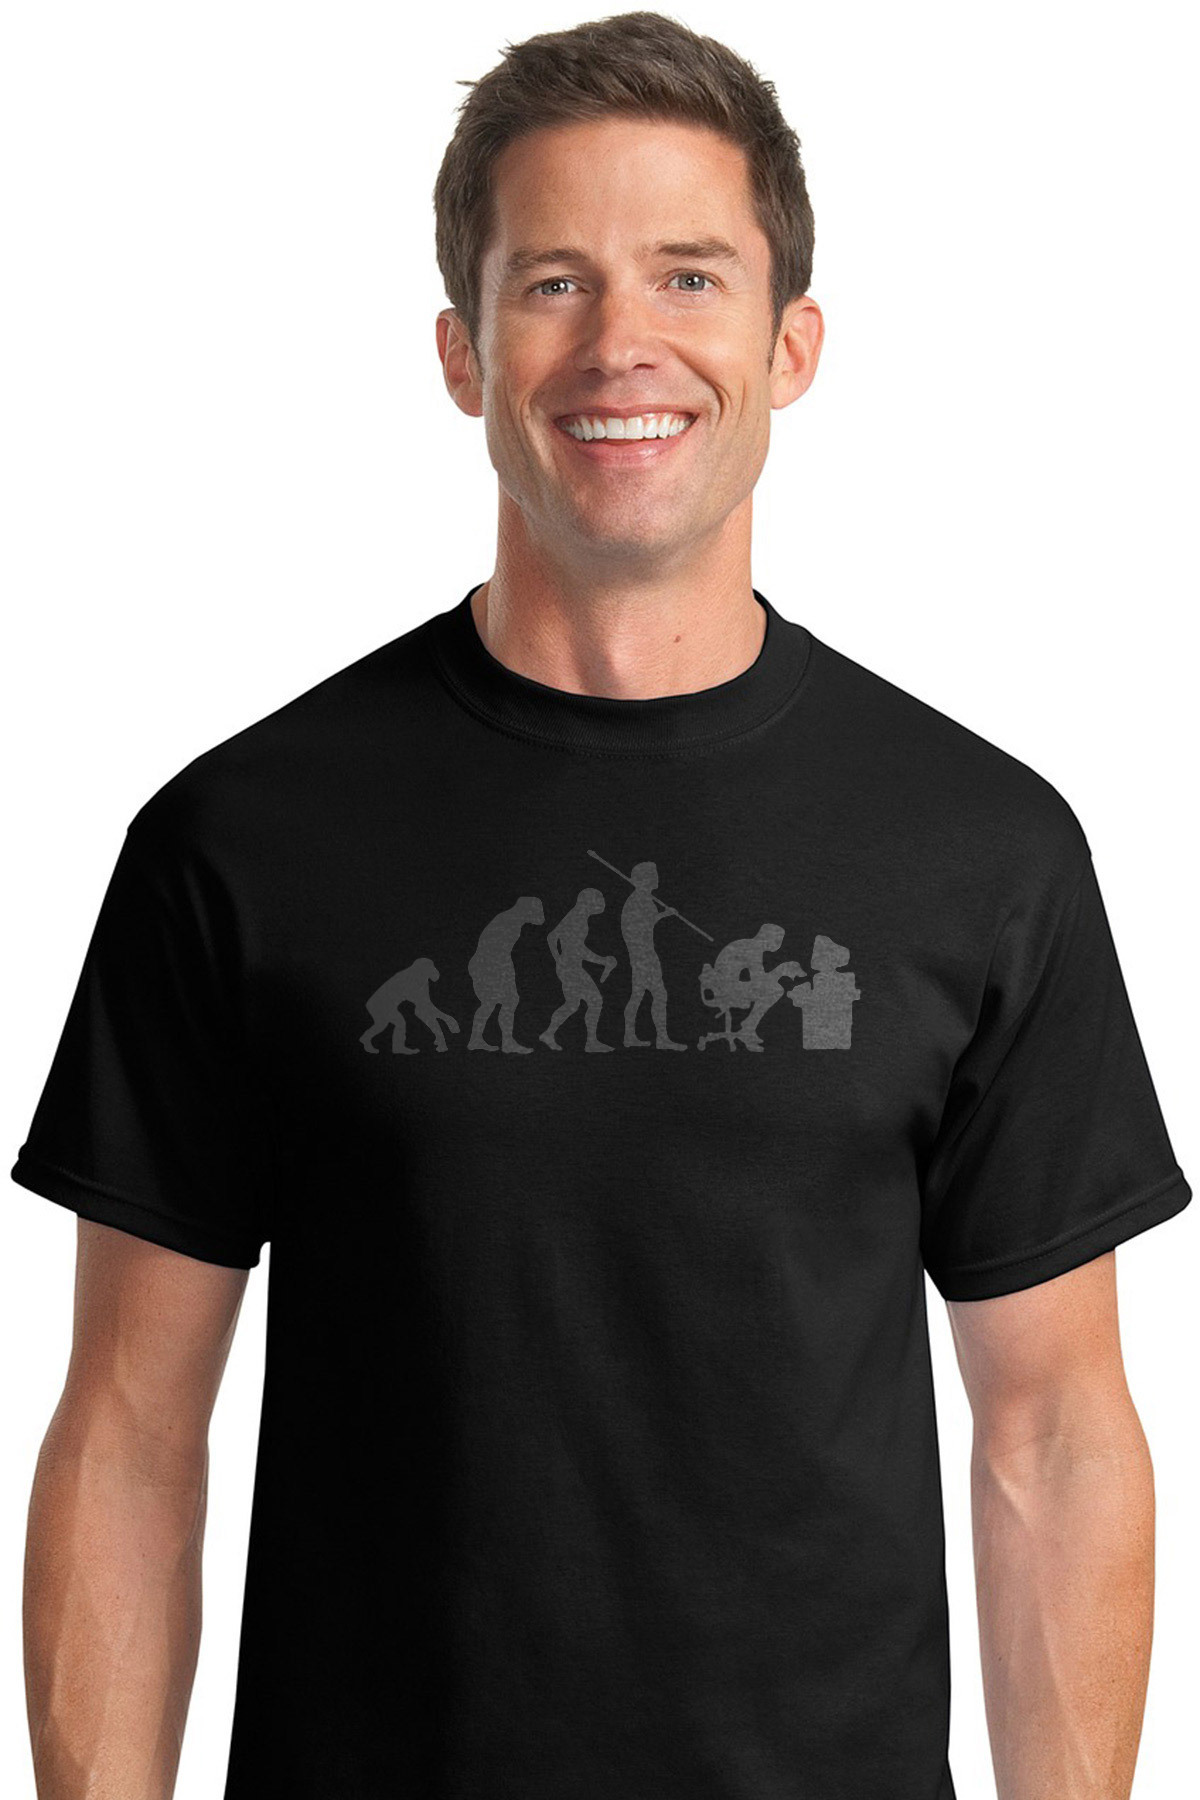 51a1a281 Evolution Computer User - Funny Evolution T-Shirt shirt